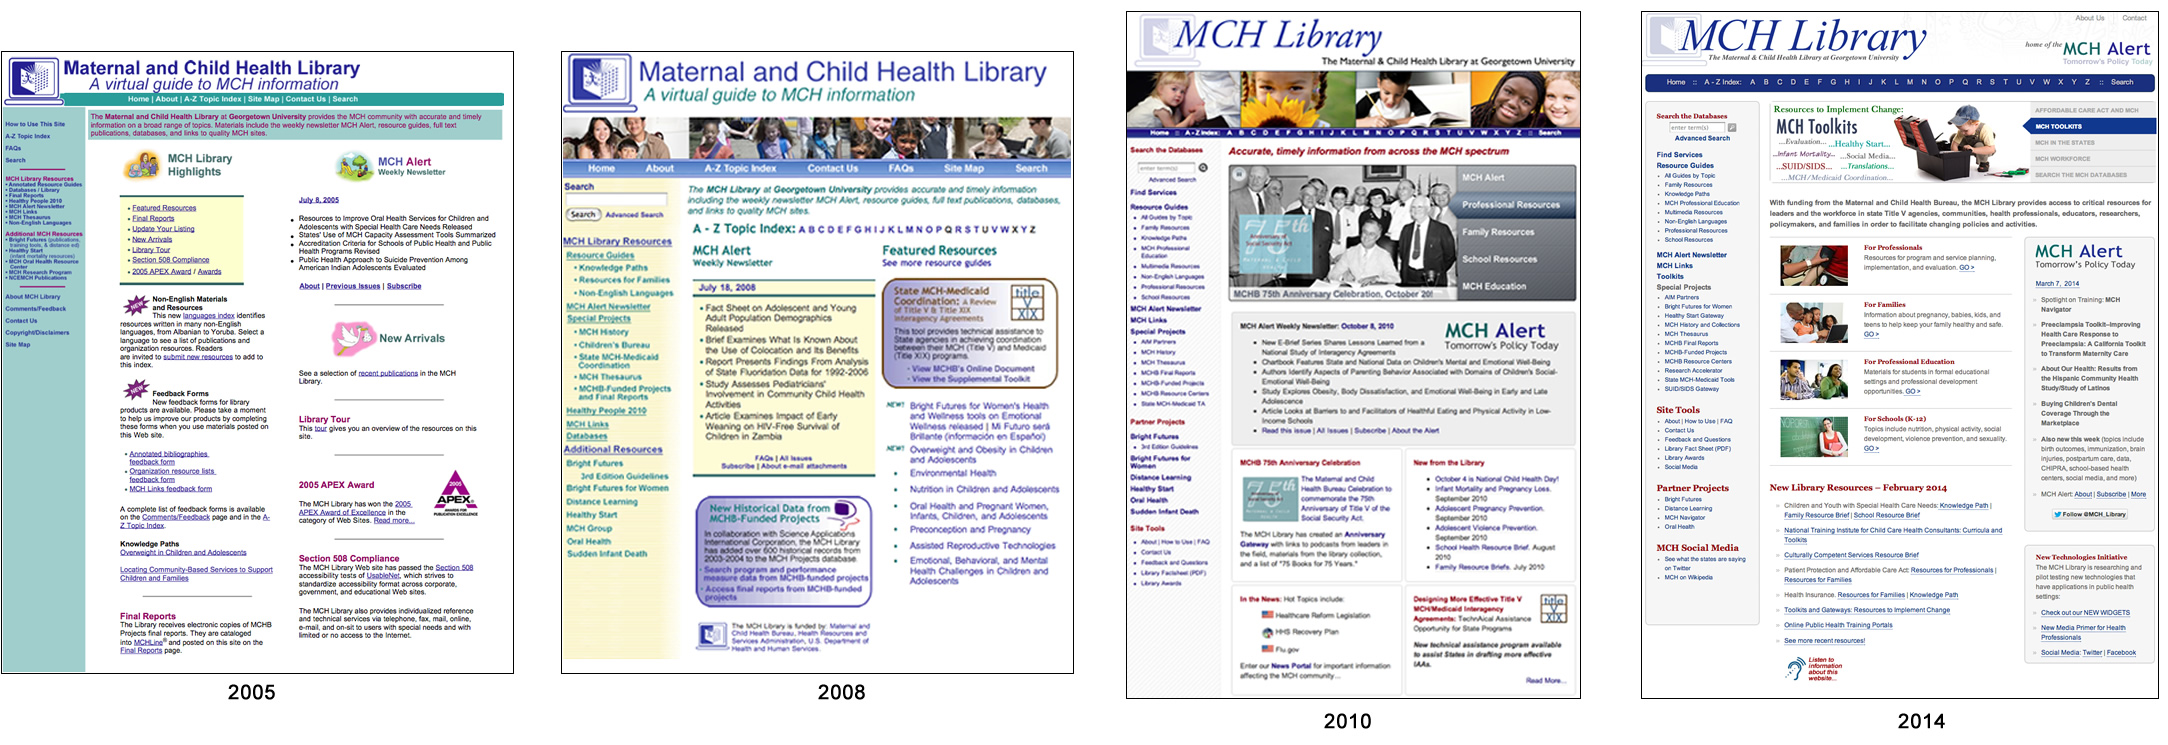 The MCH Library website over the years.